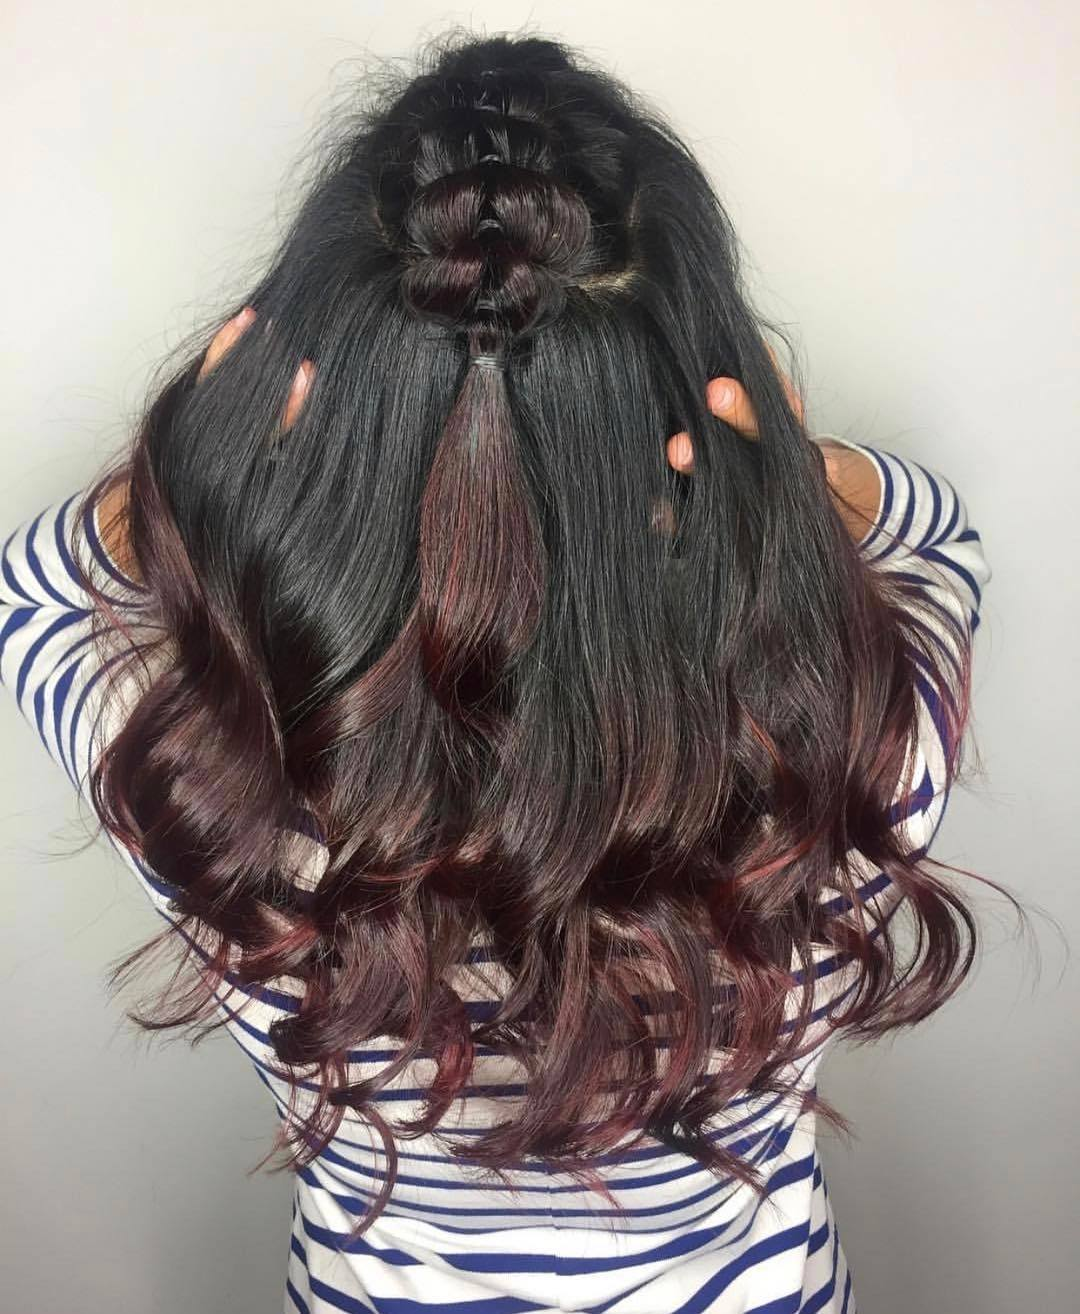 Woman with long curly black to mahogany ombre hair in a half-up pull-through braid